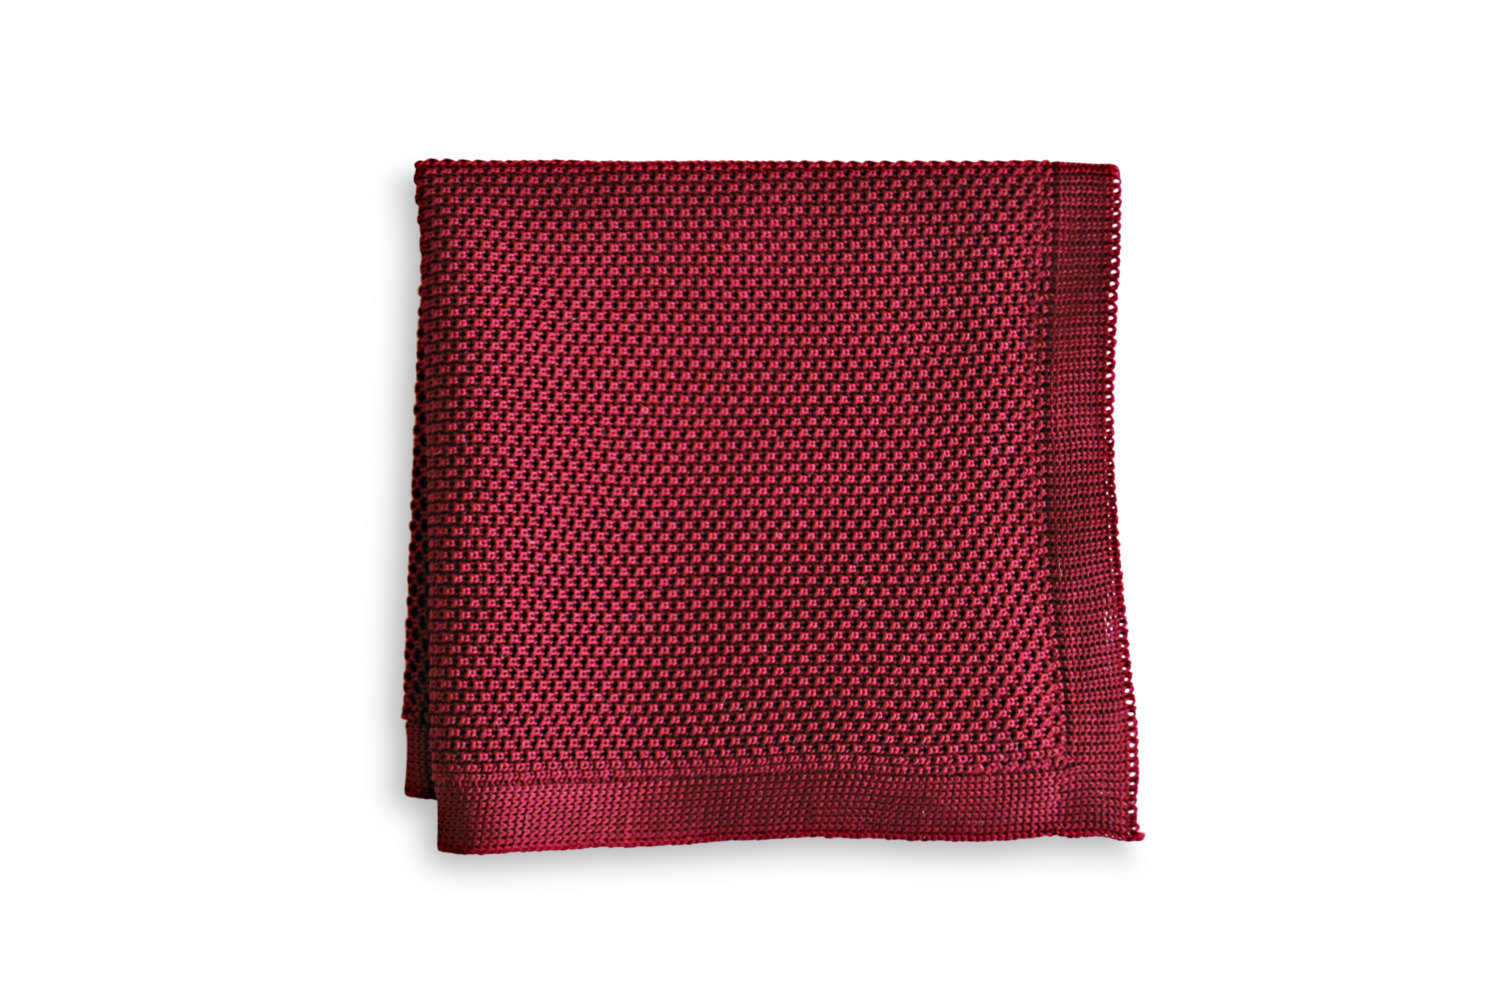 Frederick Thomas knitted plain maroon pocket square FT3161